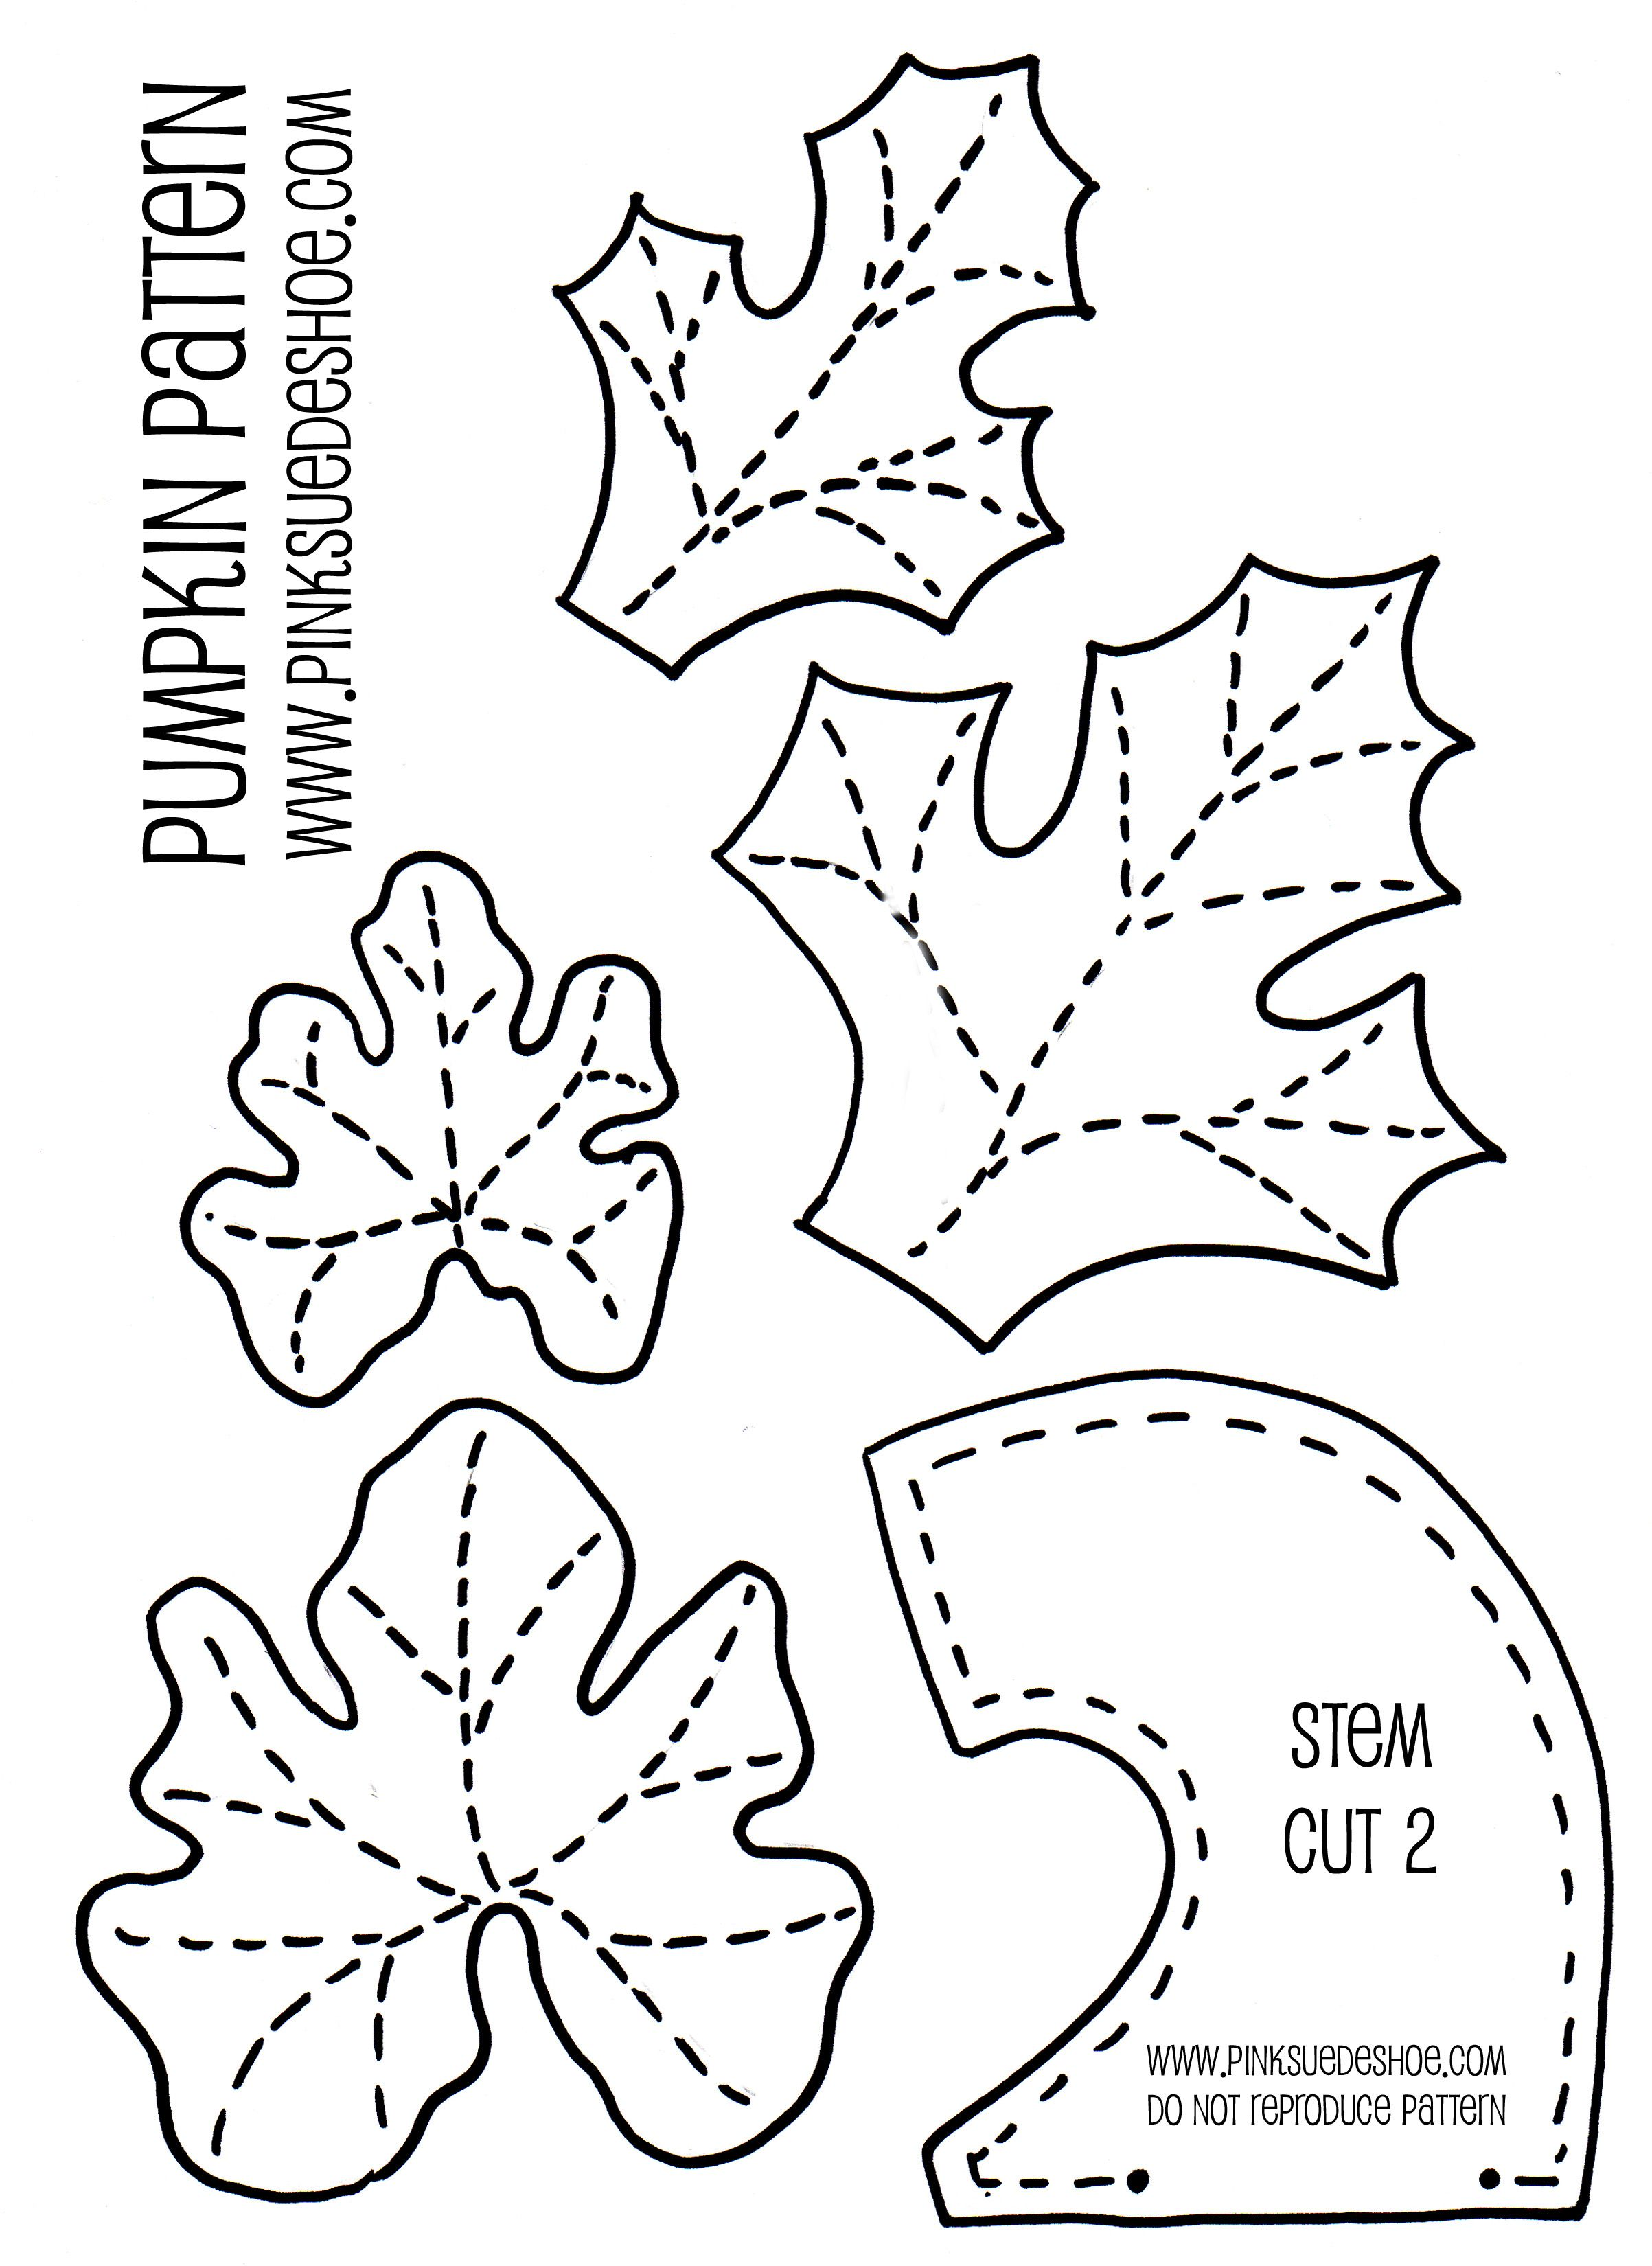 Leaves and stems jpg ooooo to go with the pumpkin pattern i have